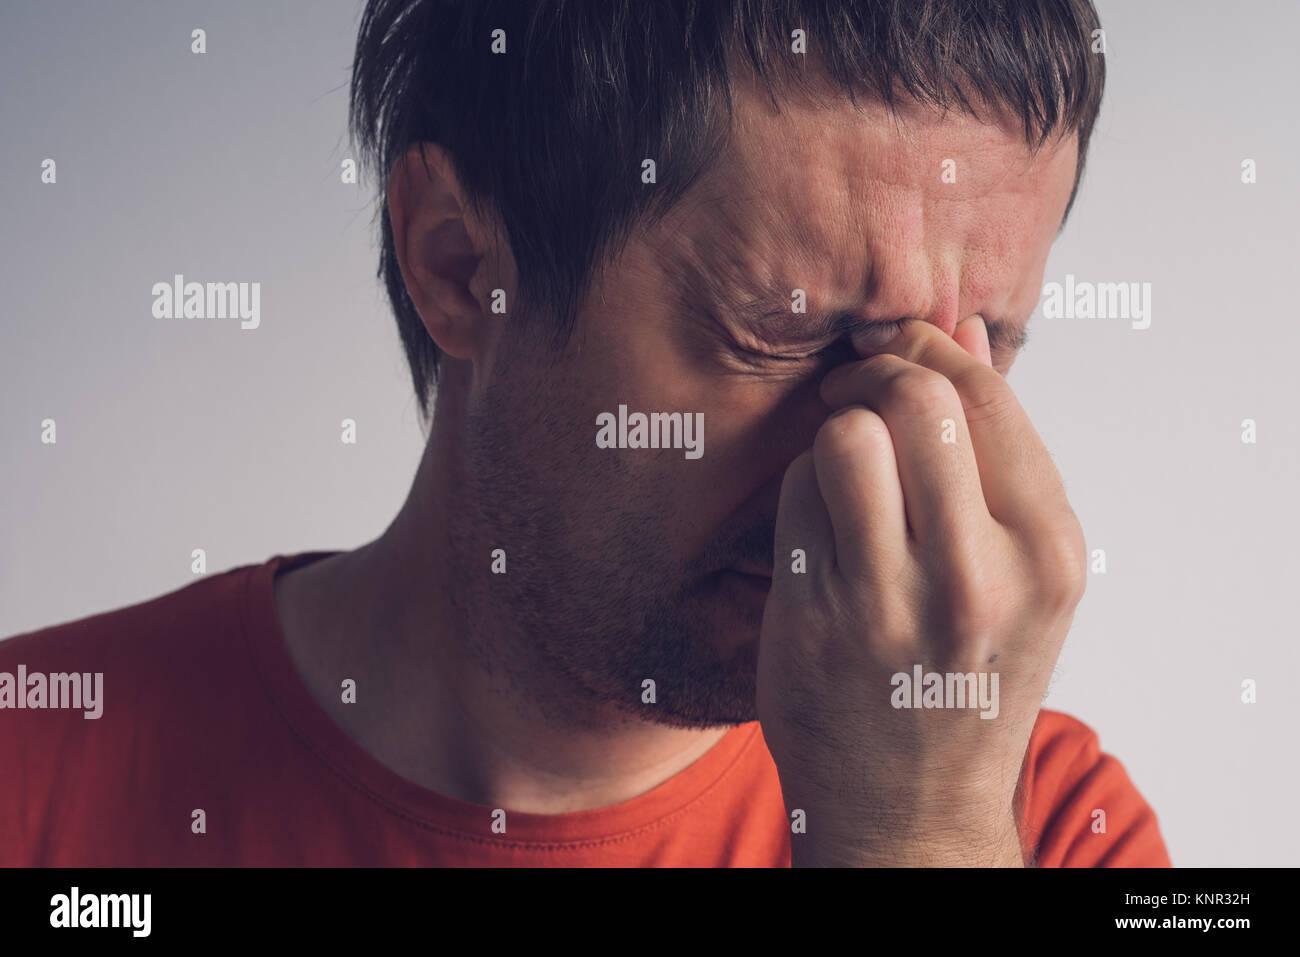 Man with migraine headache, adult caucasian male suffering from severe pain in head. - Stock Image